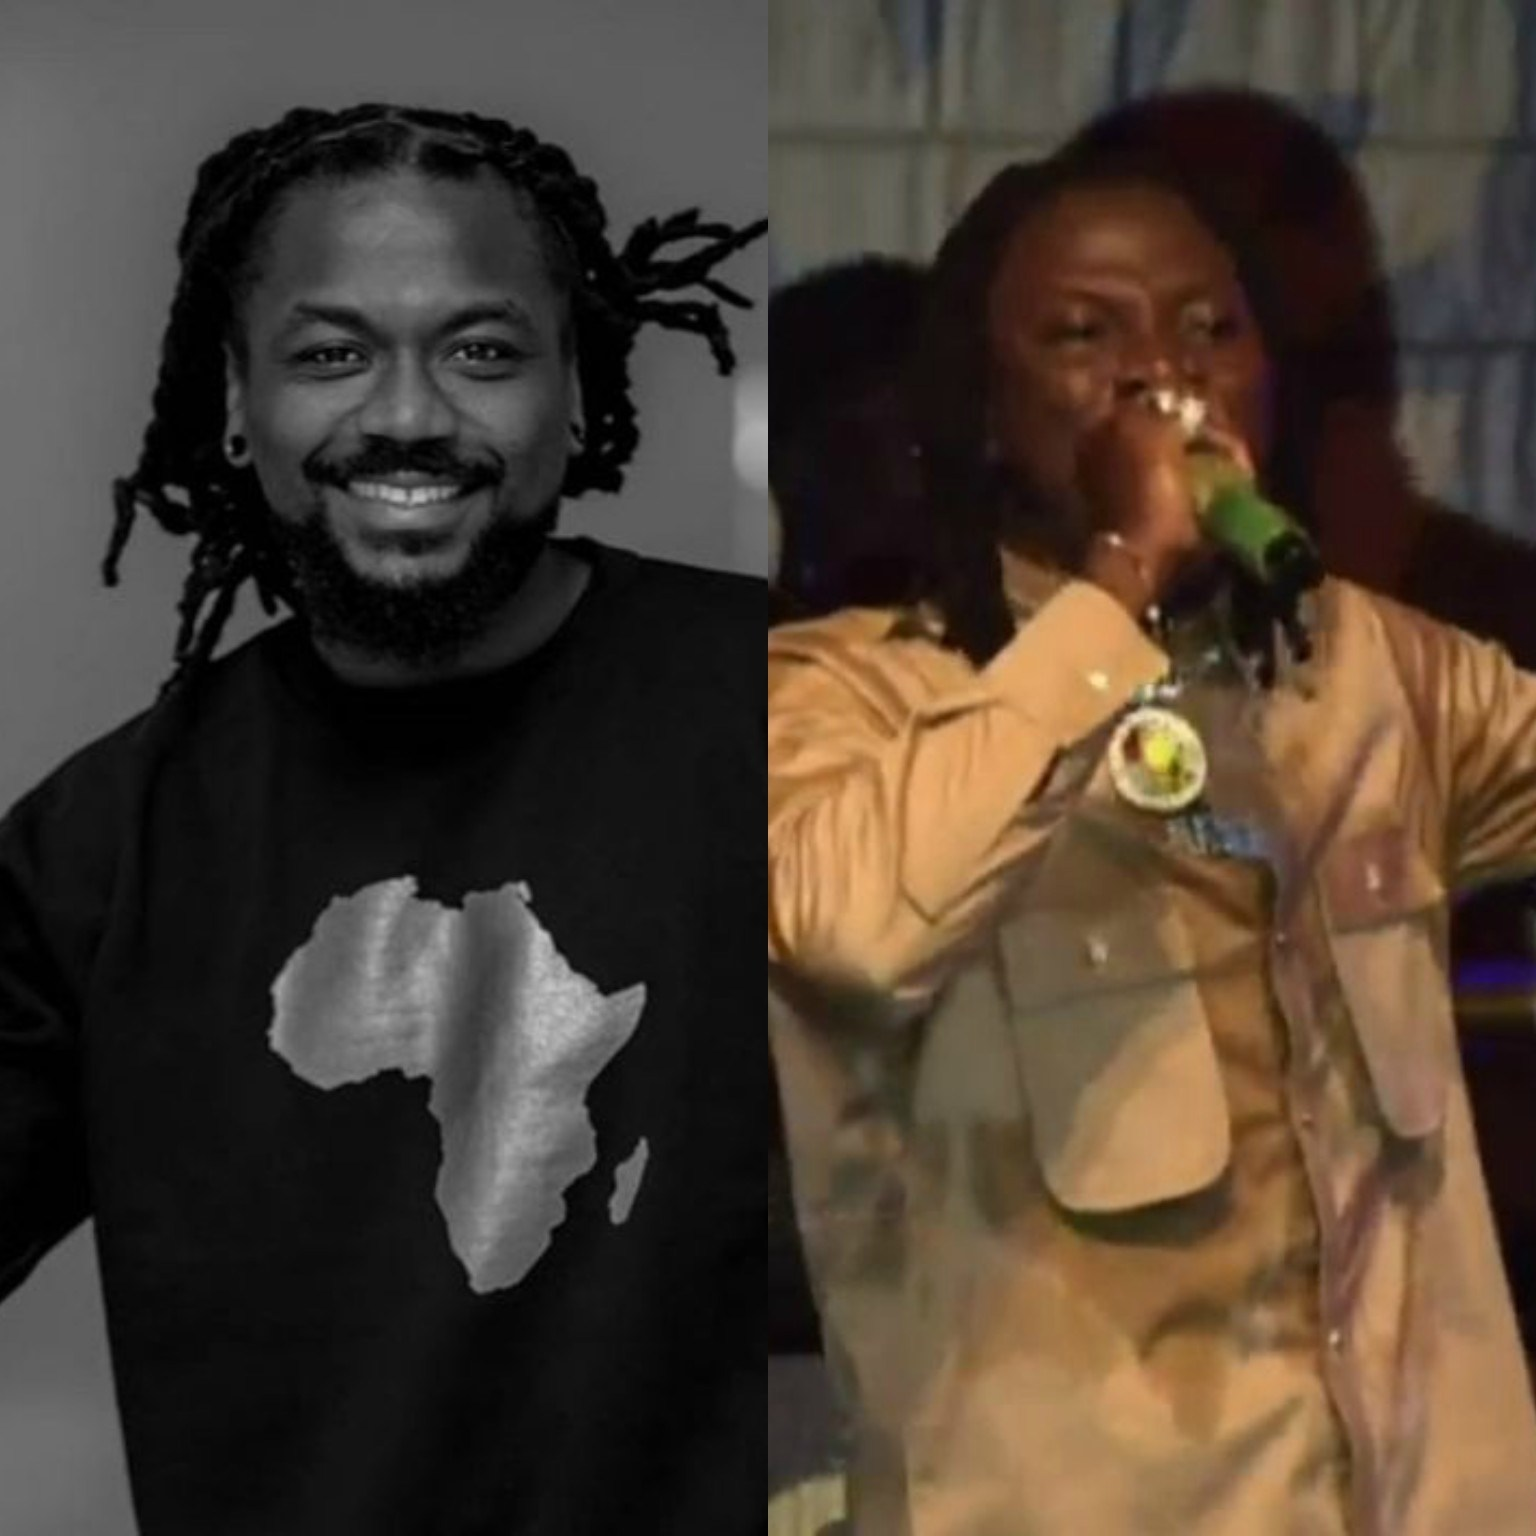 video-samini-is-a-sellout-stonebwoy-blasts-samini-at-asaase-soundclash